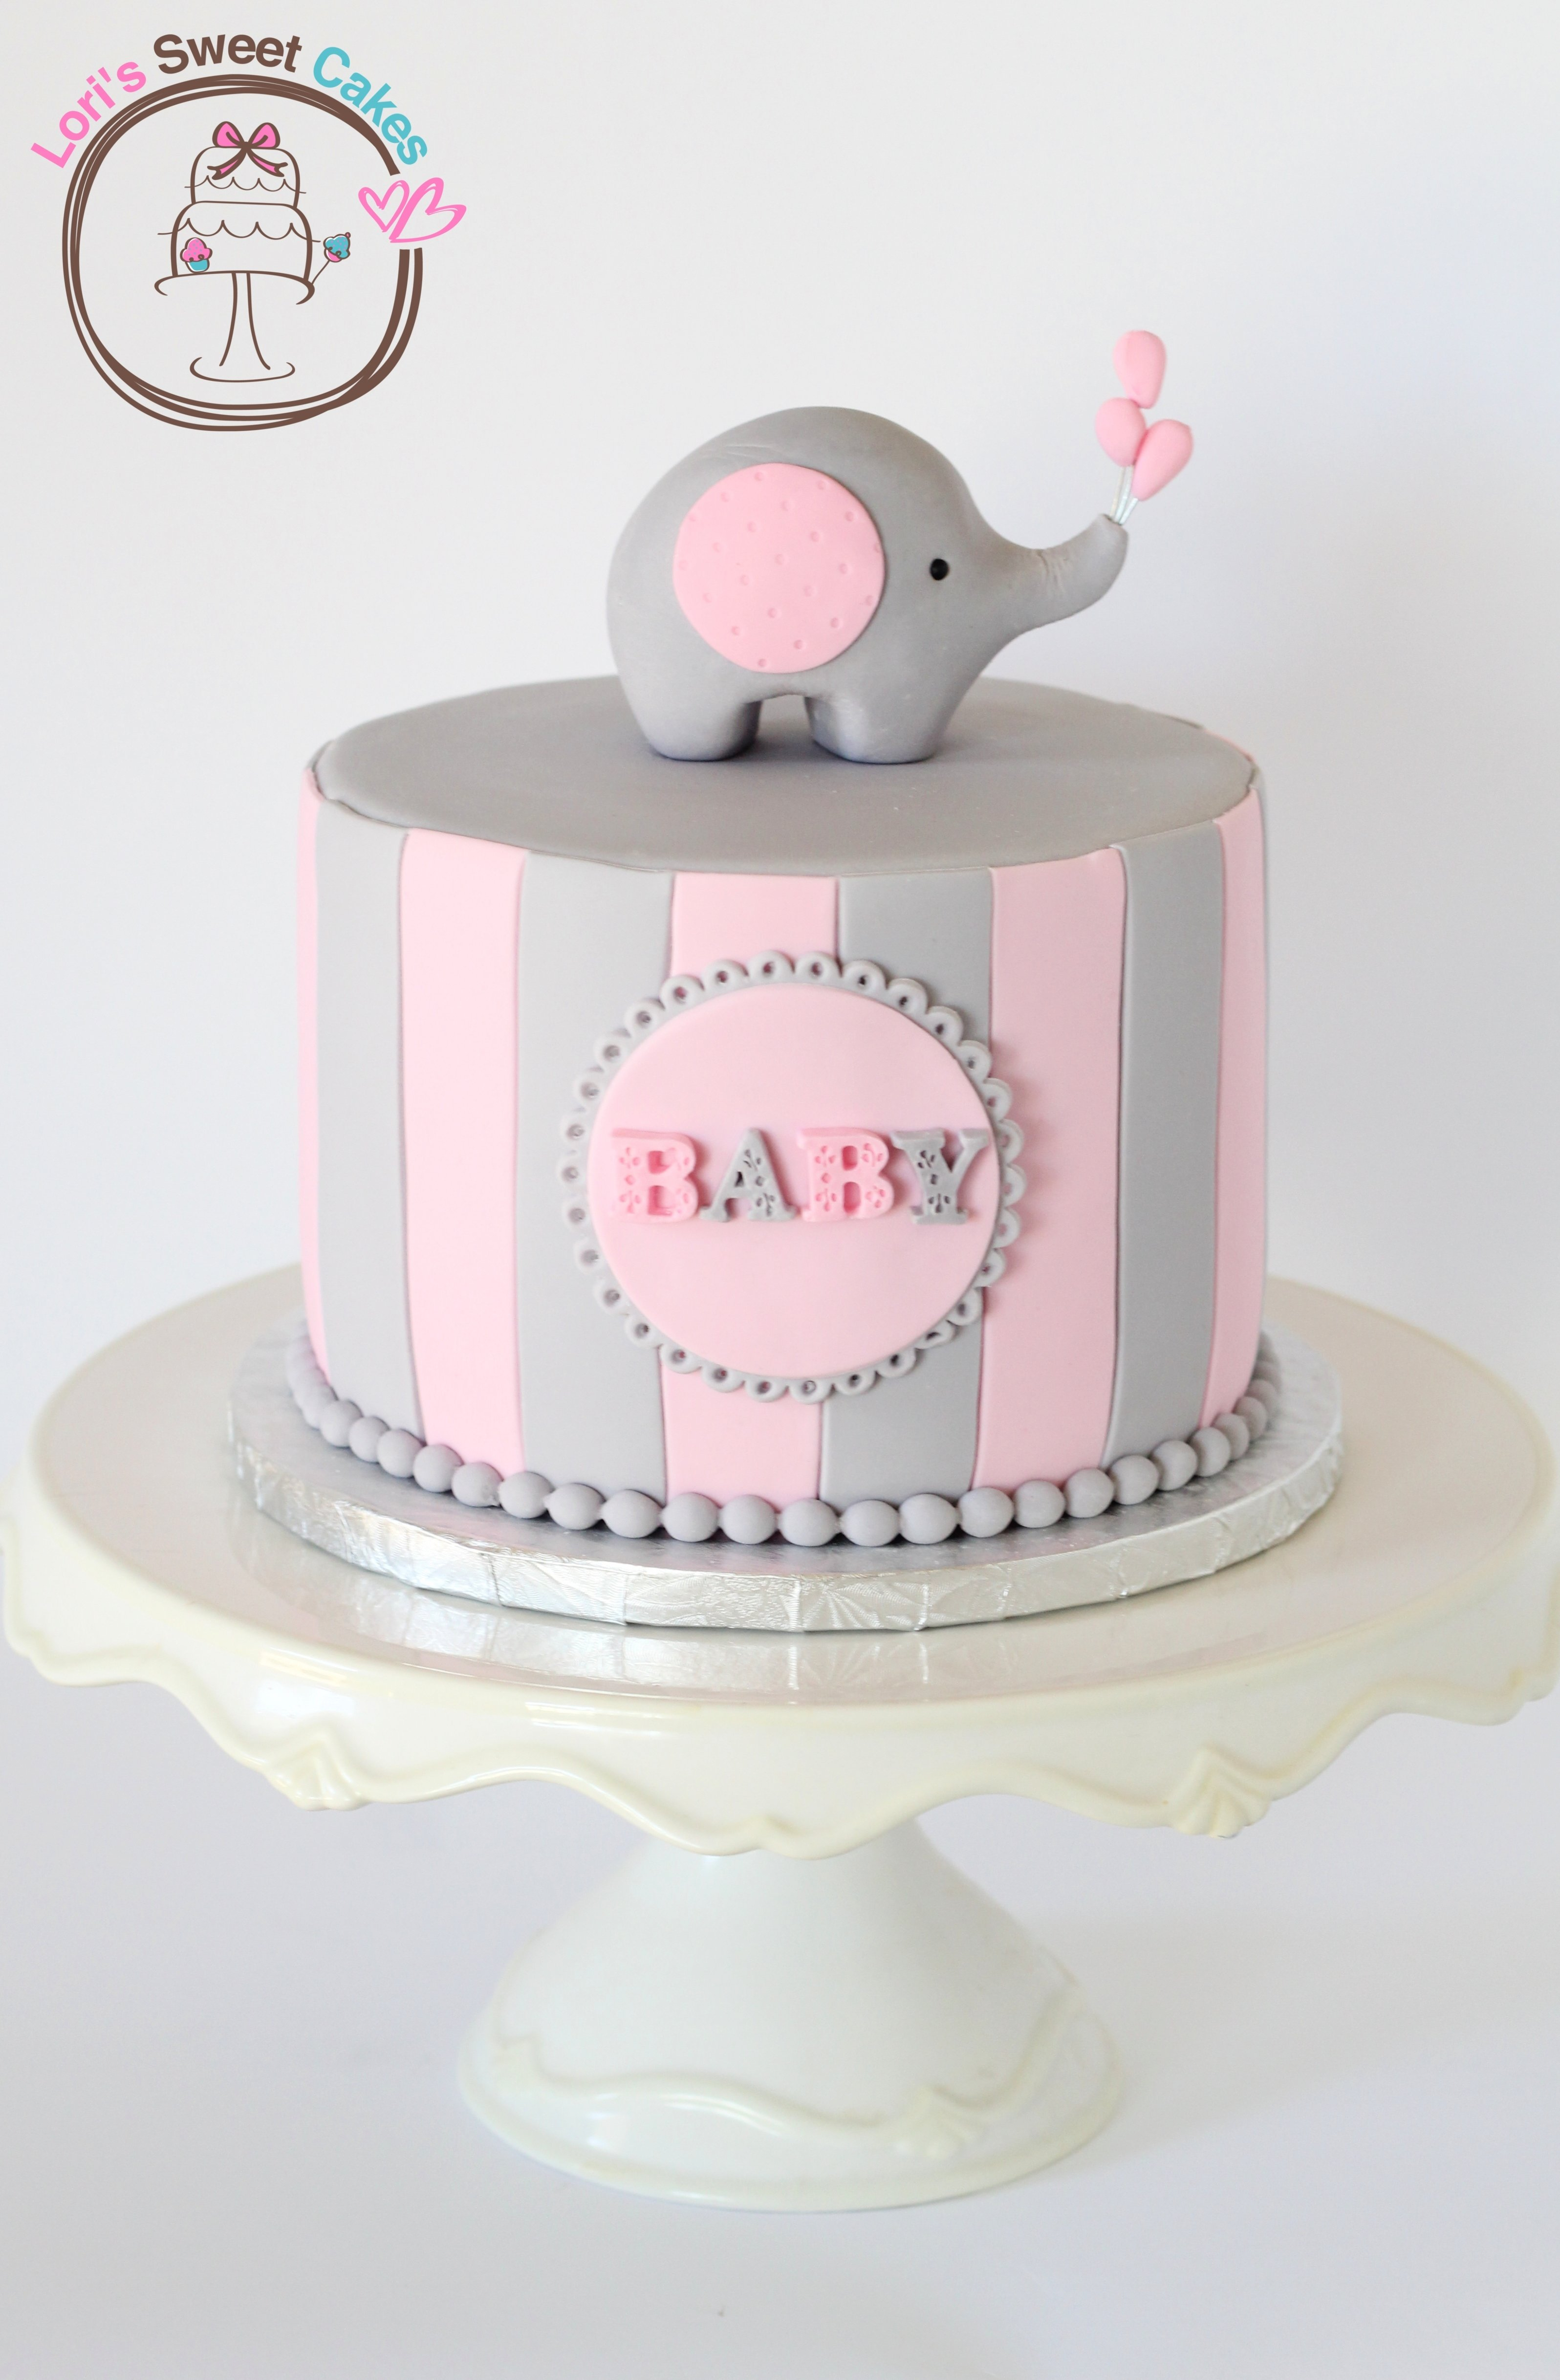 10 Beautiful Girl Baby Shower Cake Ideas ideias de bolo para cha de bebe elephant baby shower cake